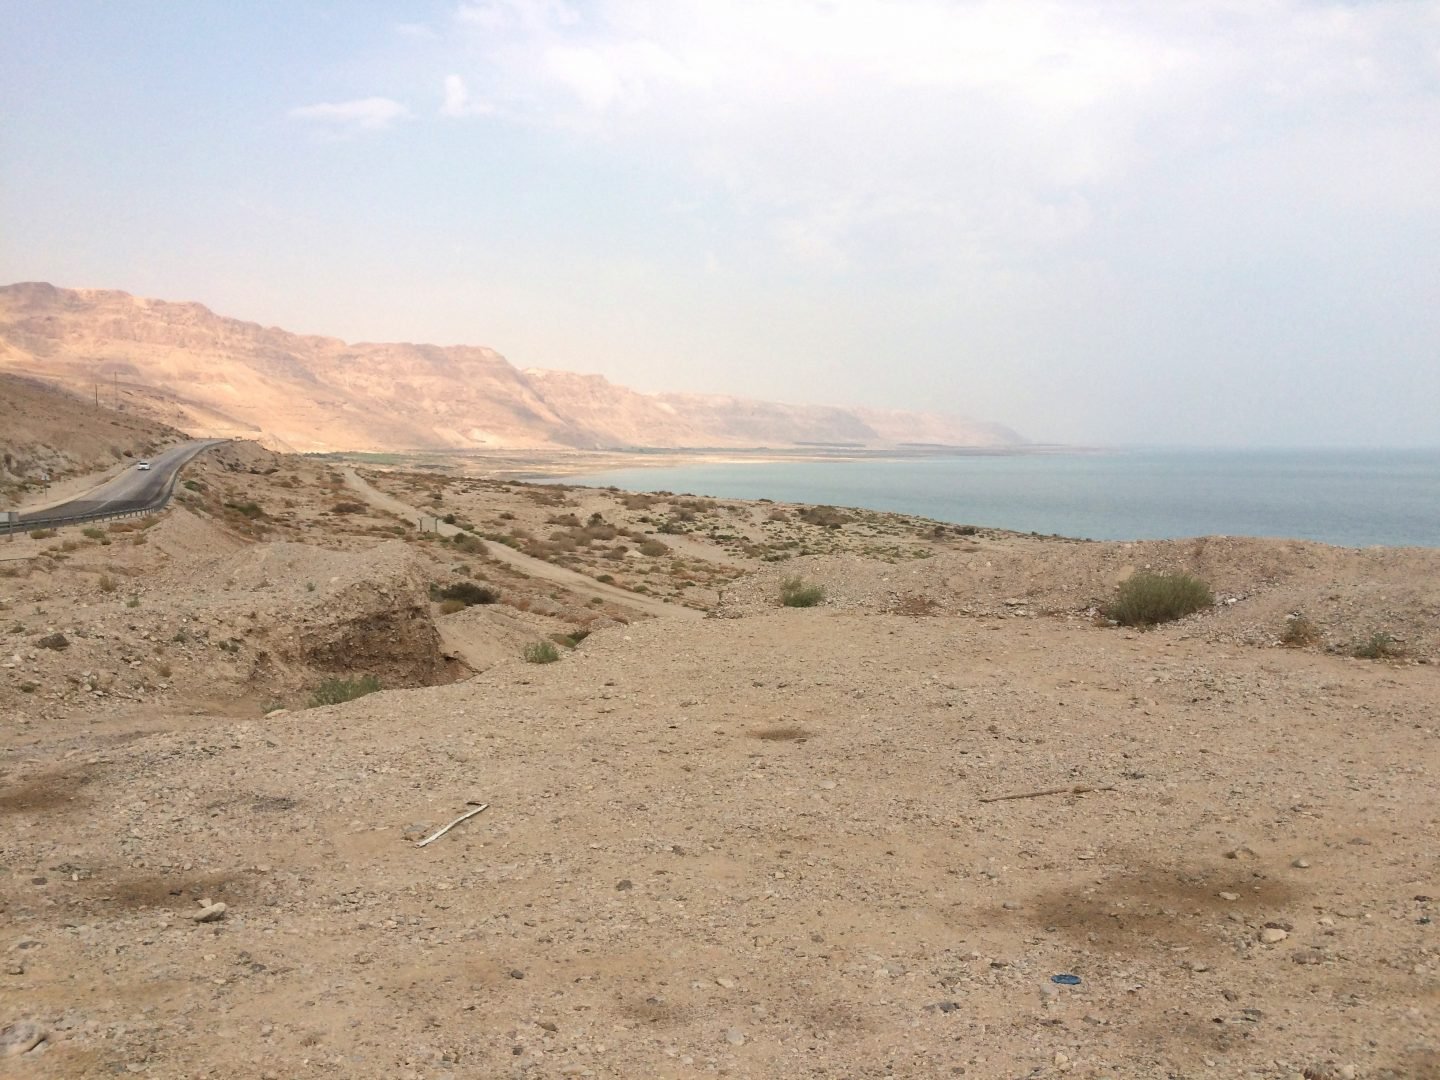 Day trip from Tel Aviv to the Dead Sea